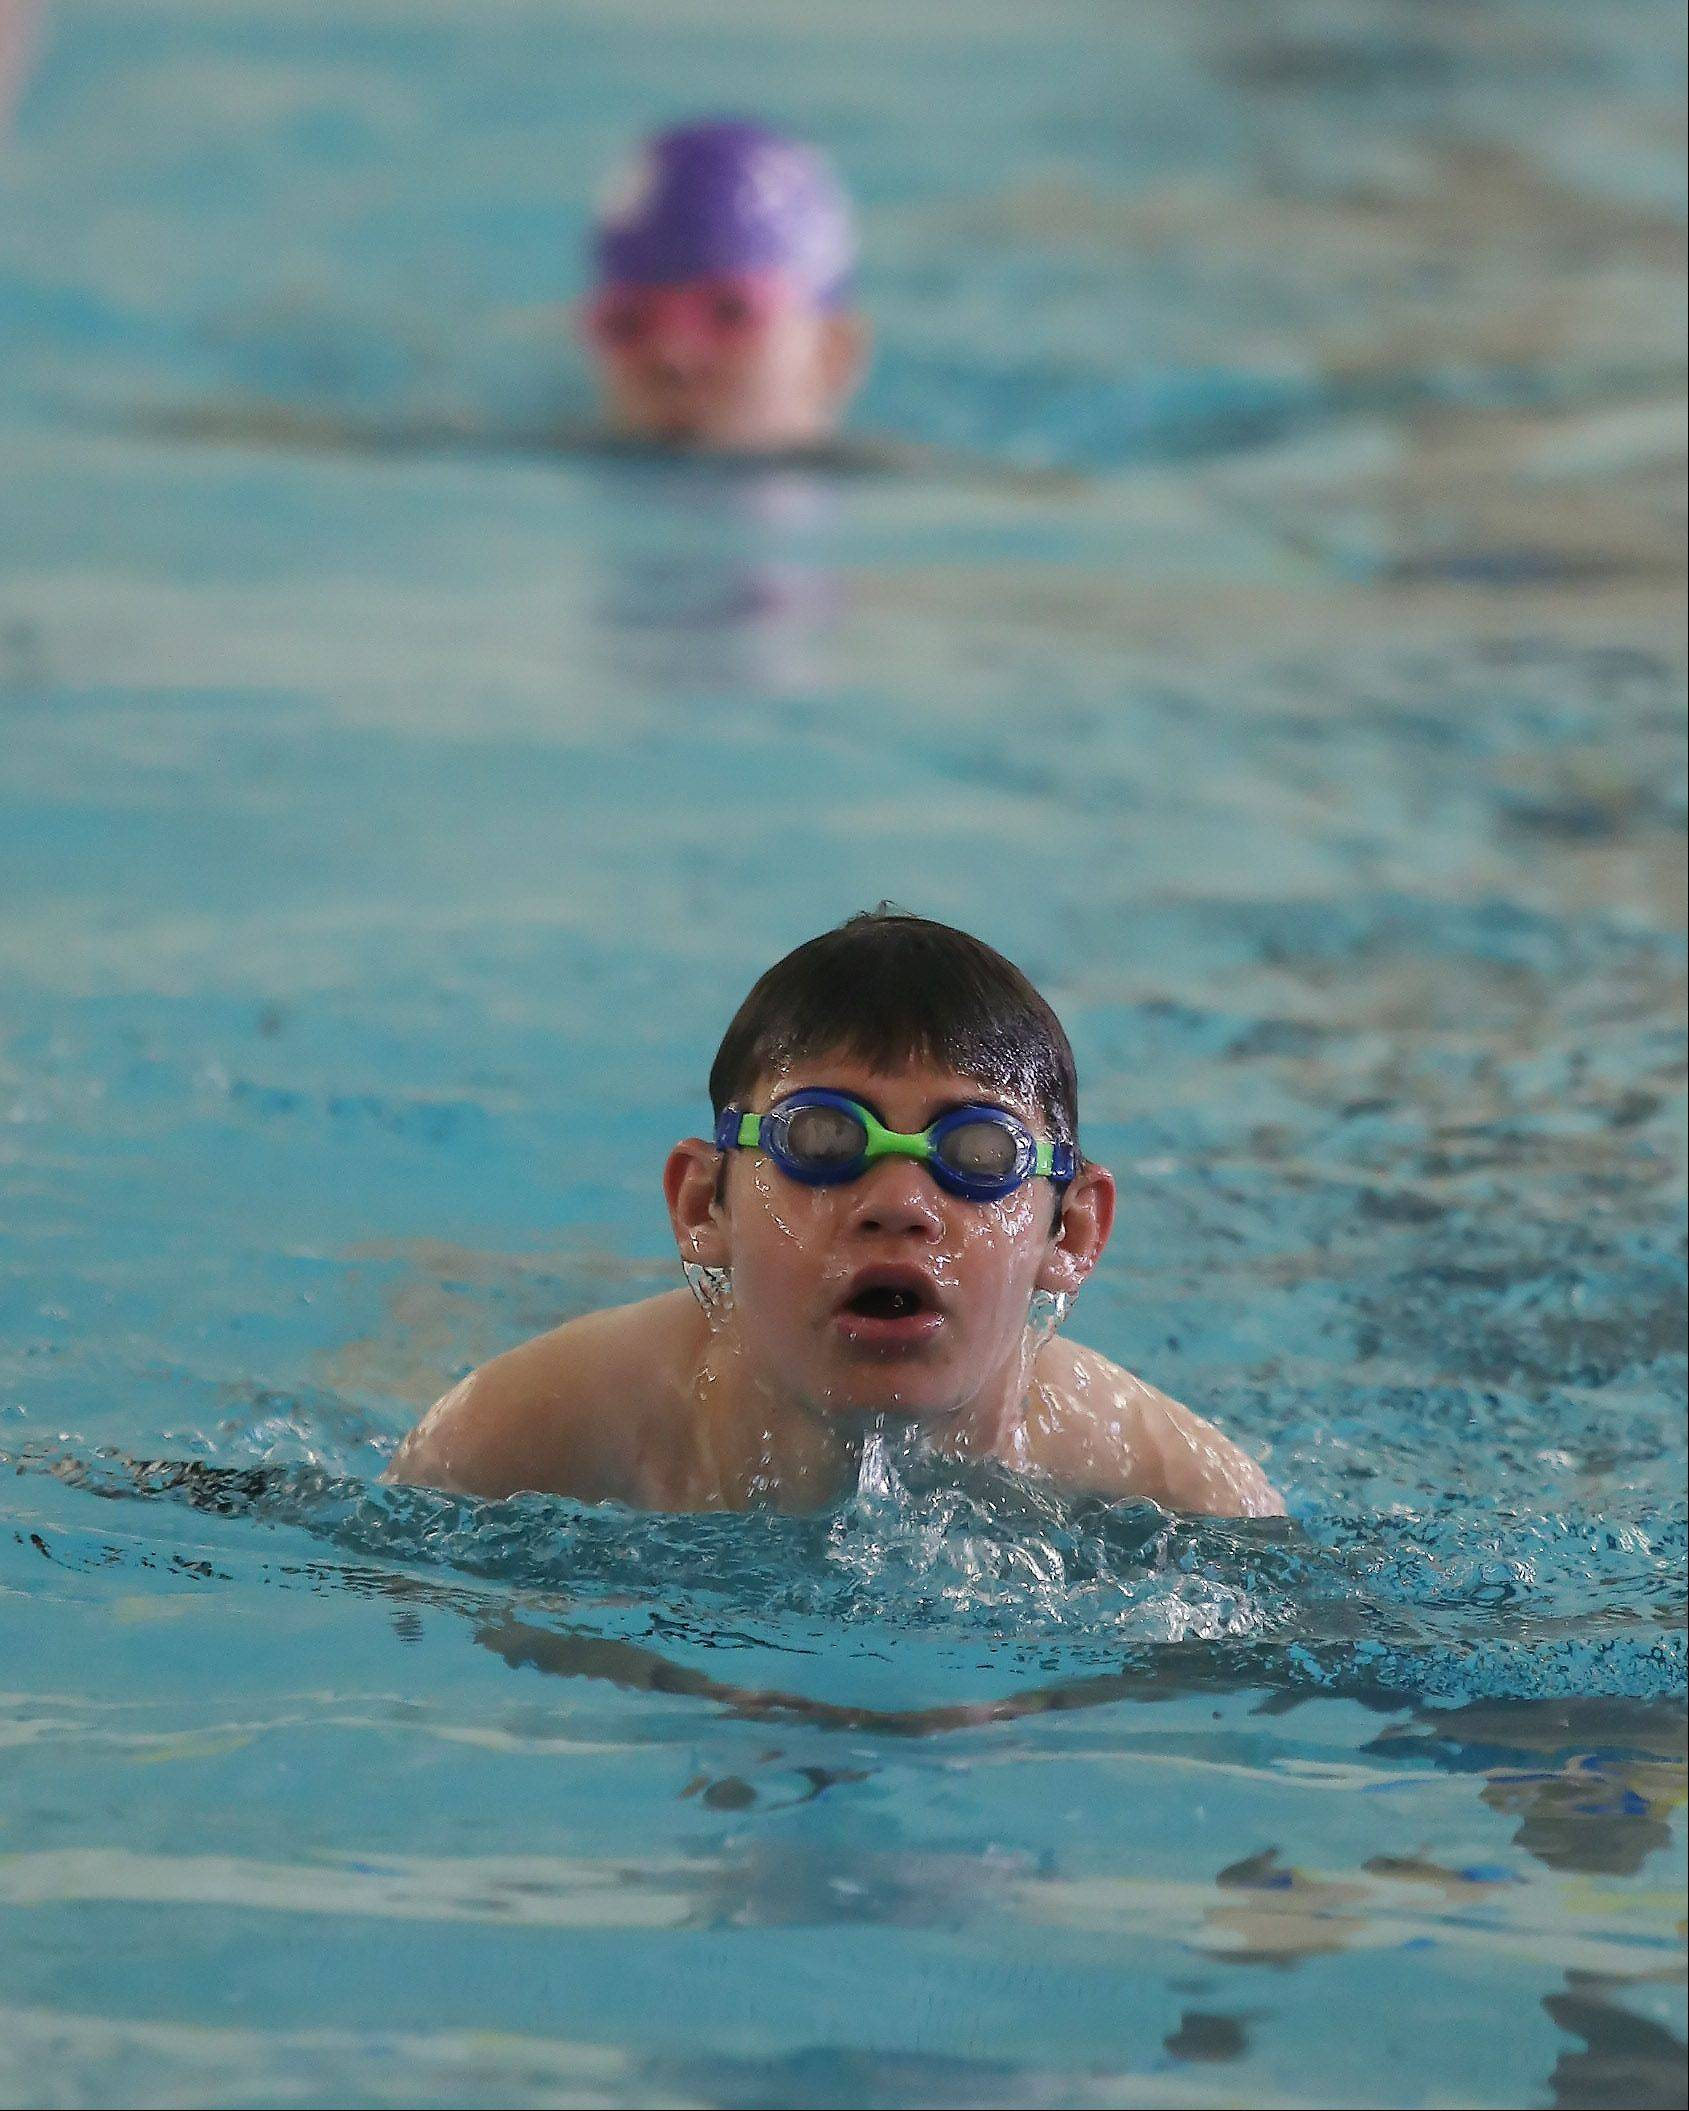 Ethan Burkhart of Libertyville swims the breast stroke Sunday during the Gateway to Gold talent identification event Sunday at Lake Forest High School. The event was hosted by the Great Lakes Adaptive Sports Association to recognize individuals who could represent the country at the Paralympic Games.